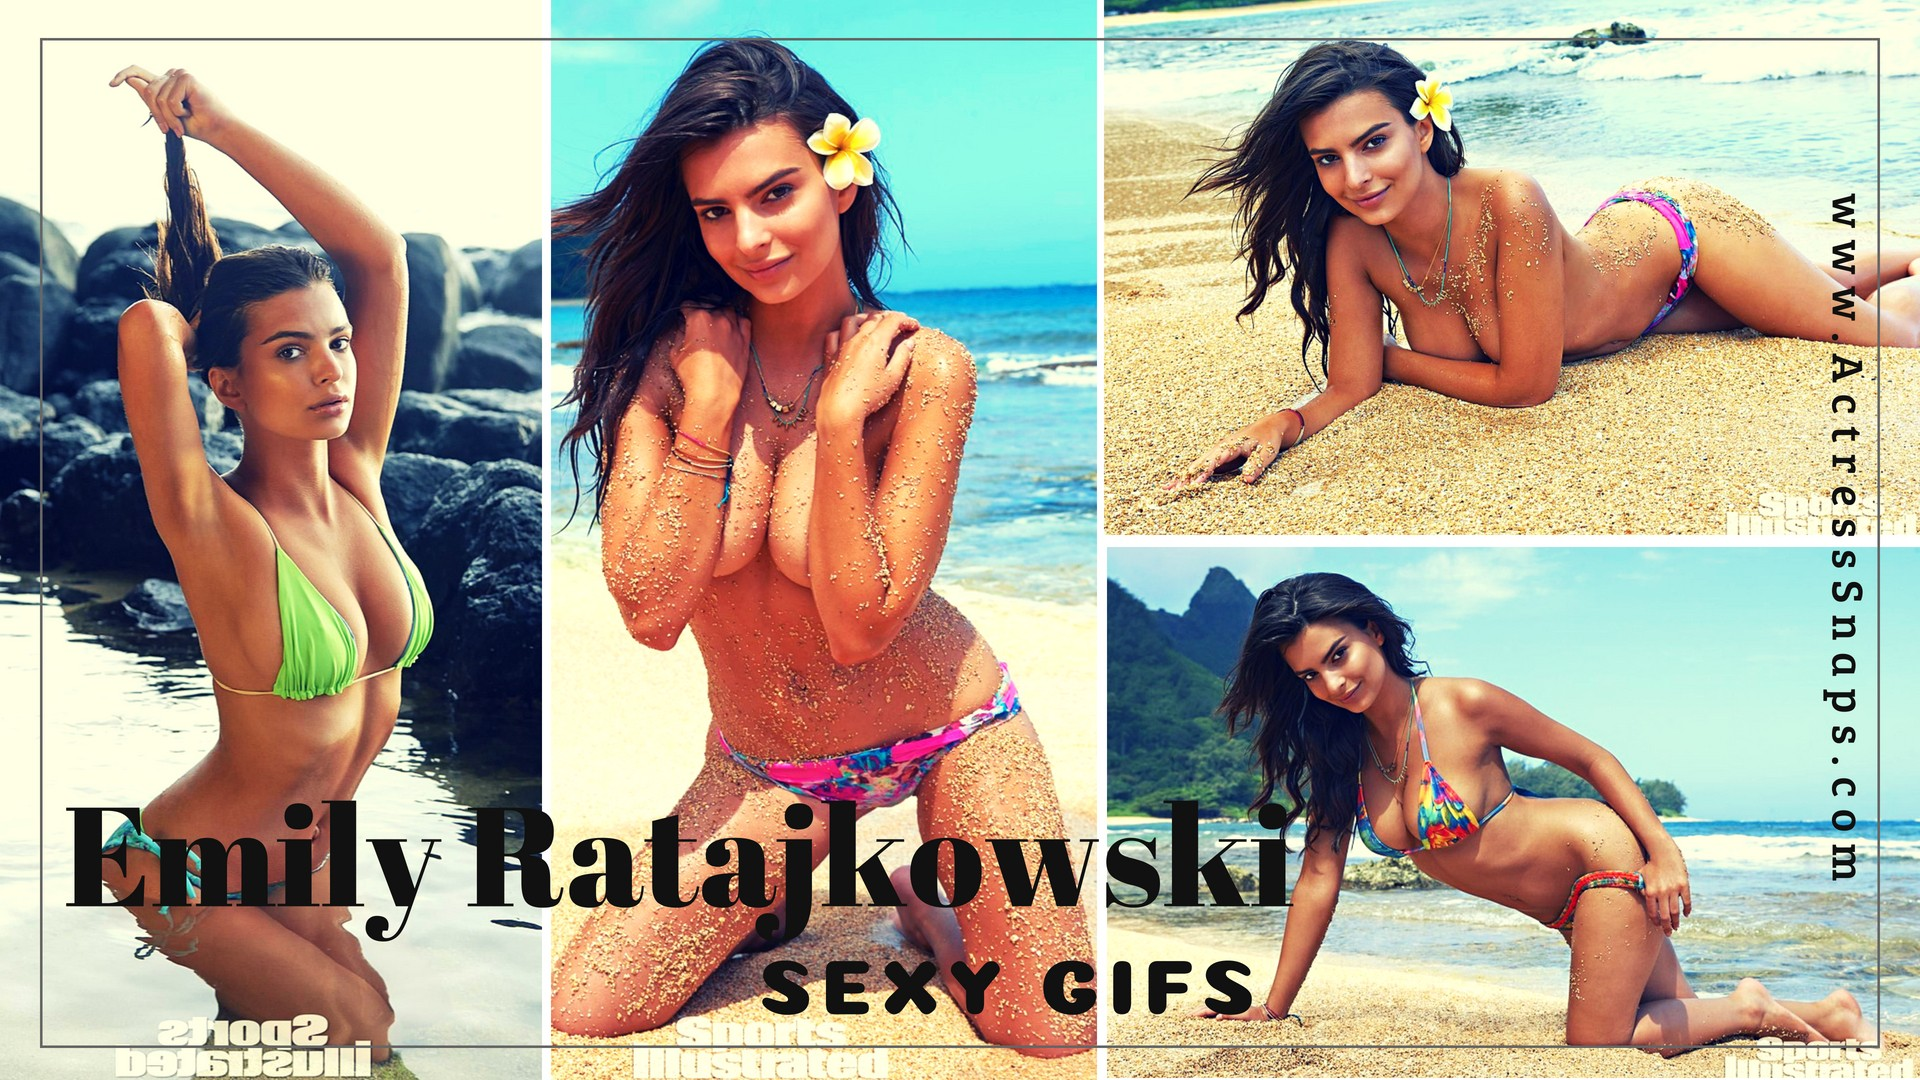 Sexy Emily Ratajkowski GIFs from Sports Illustrated Shoot - Sexy Actress Pictures | Hot Actress Pictures